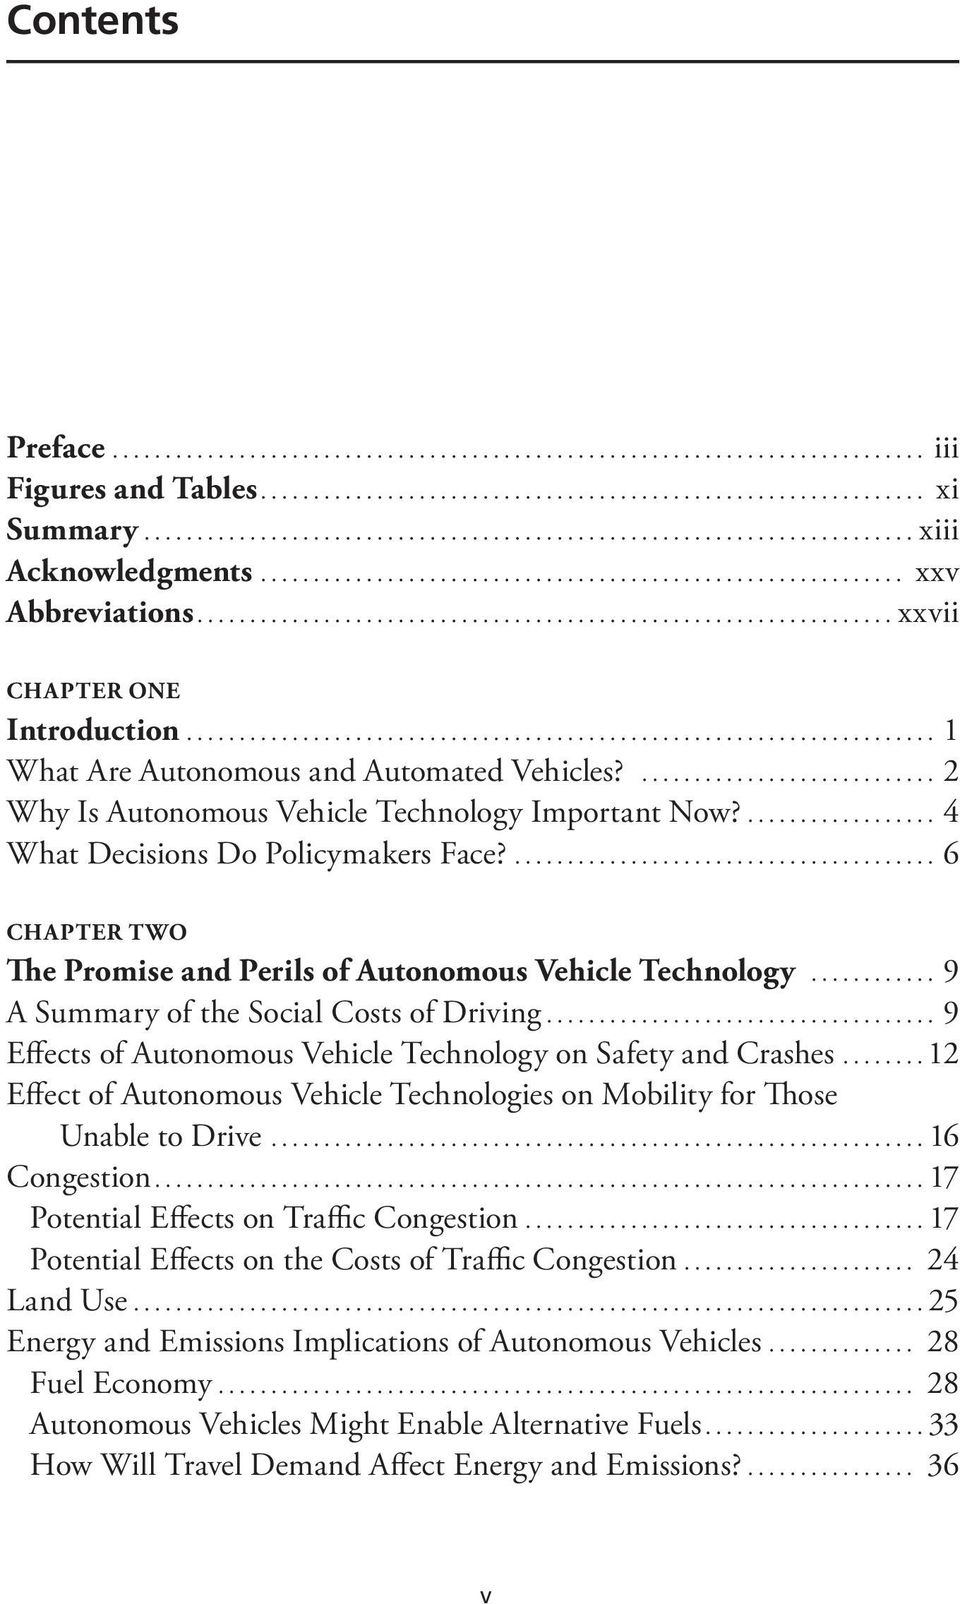 .. 9 A Summary of the Social Costs of Driving... 9 Effects of Autonomous Vehicle Technology on Safety and Crashes...12 Effect of Autonomous Vehicle Technologies on Mobility for Those Unable to Drive.